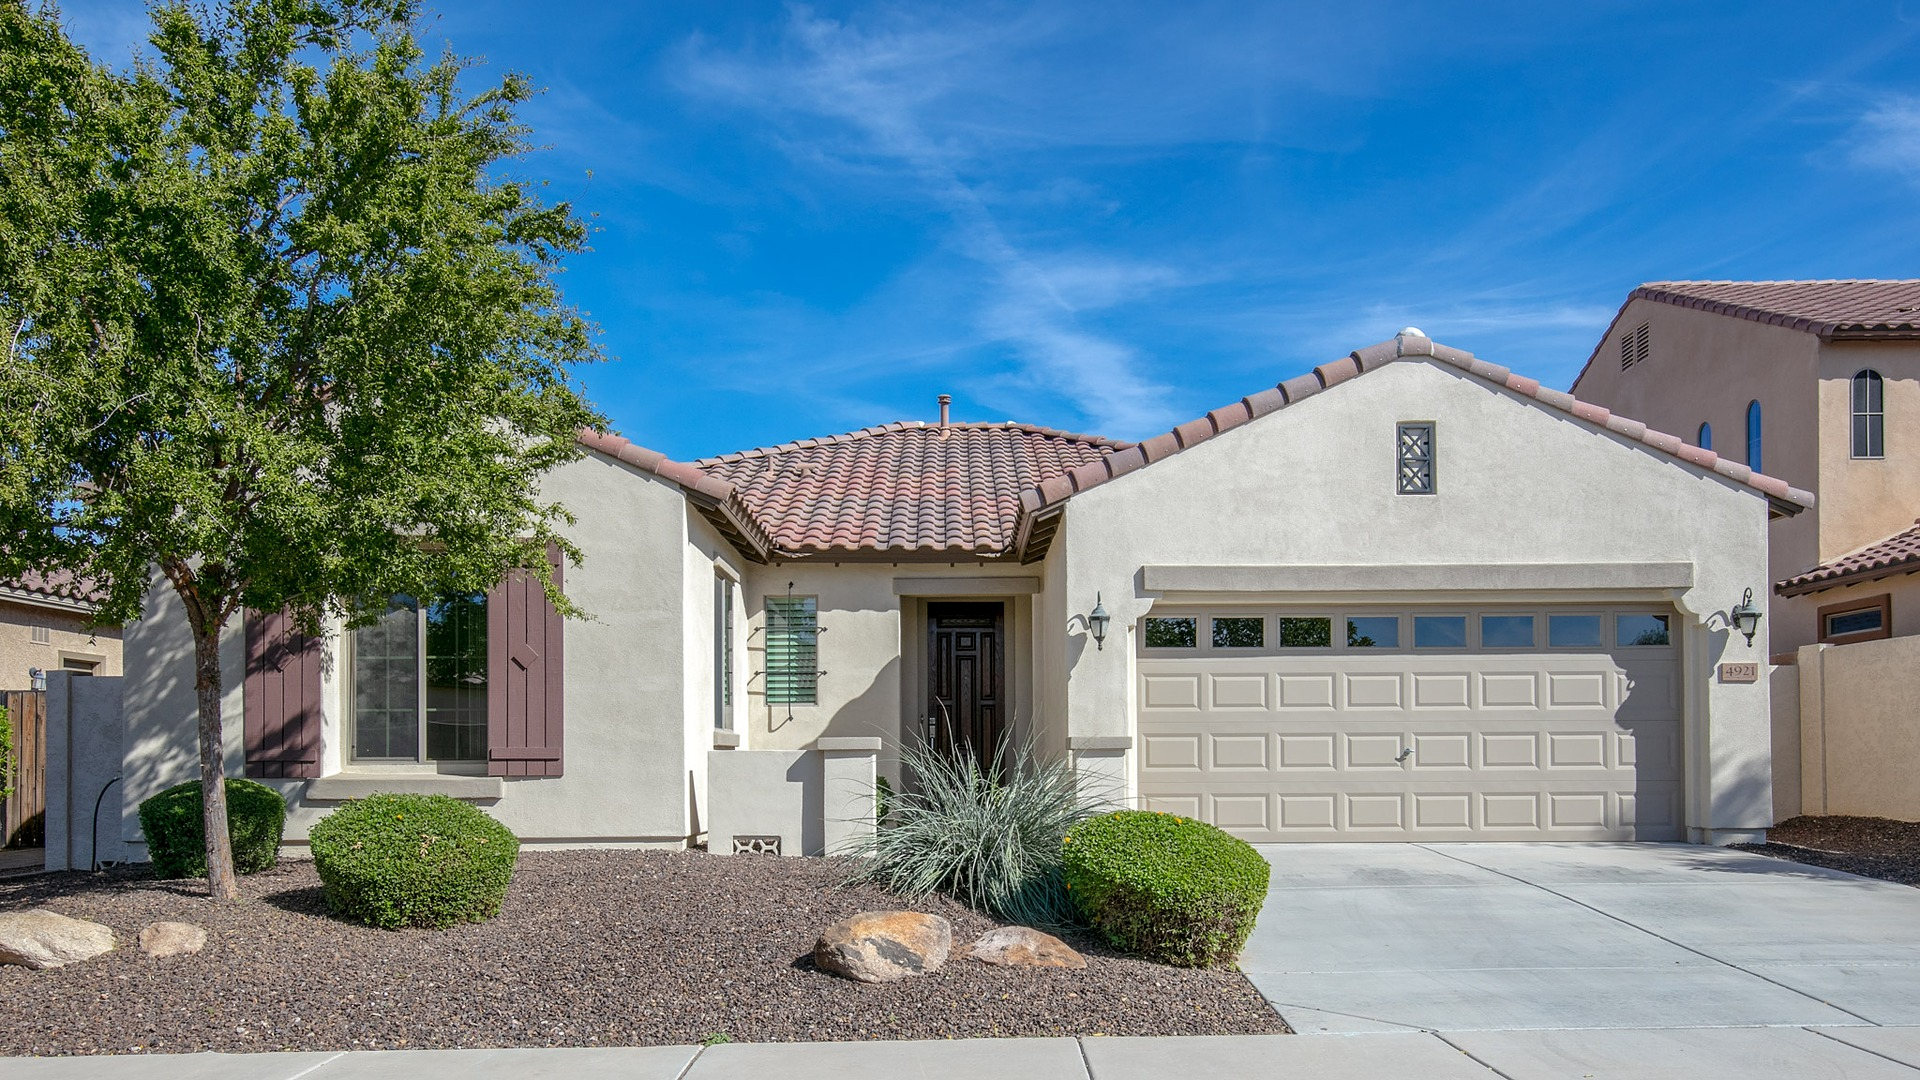 4921 S White Pl, Chandler, AZ 85249 - Old Stone Ranch | Amy Jones Group